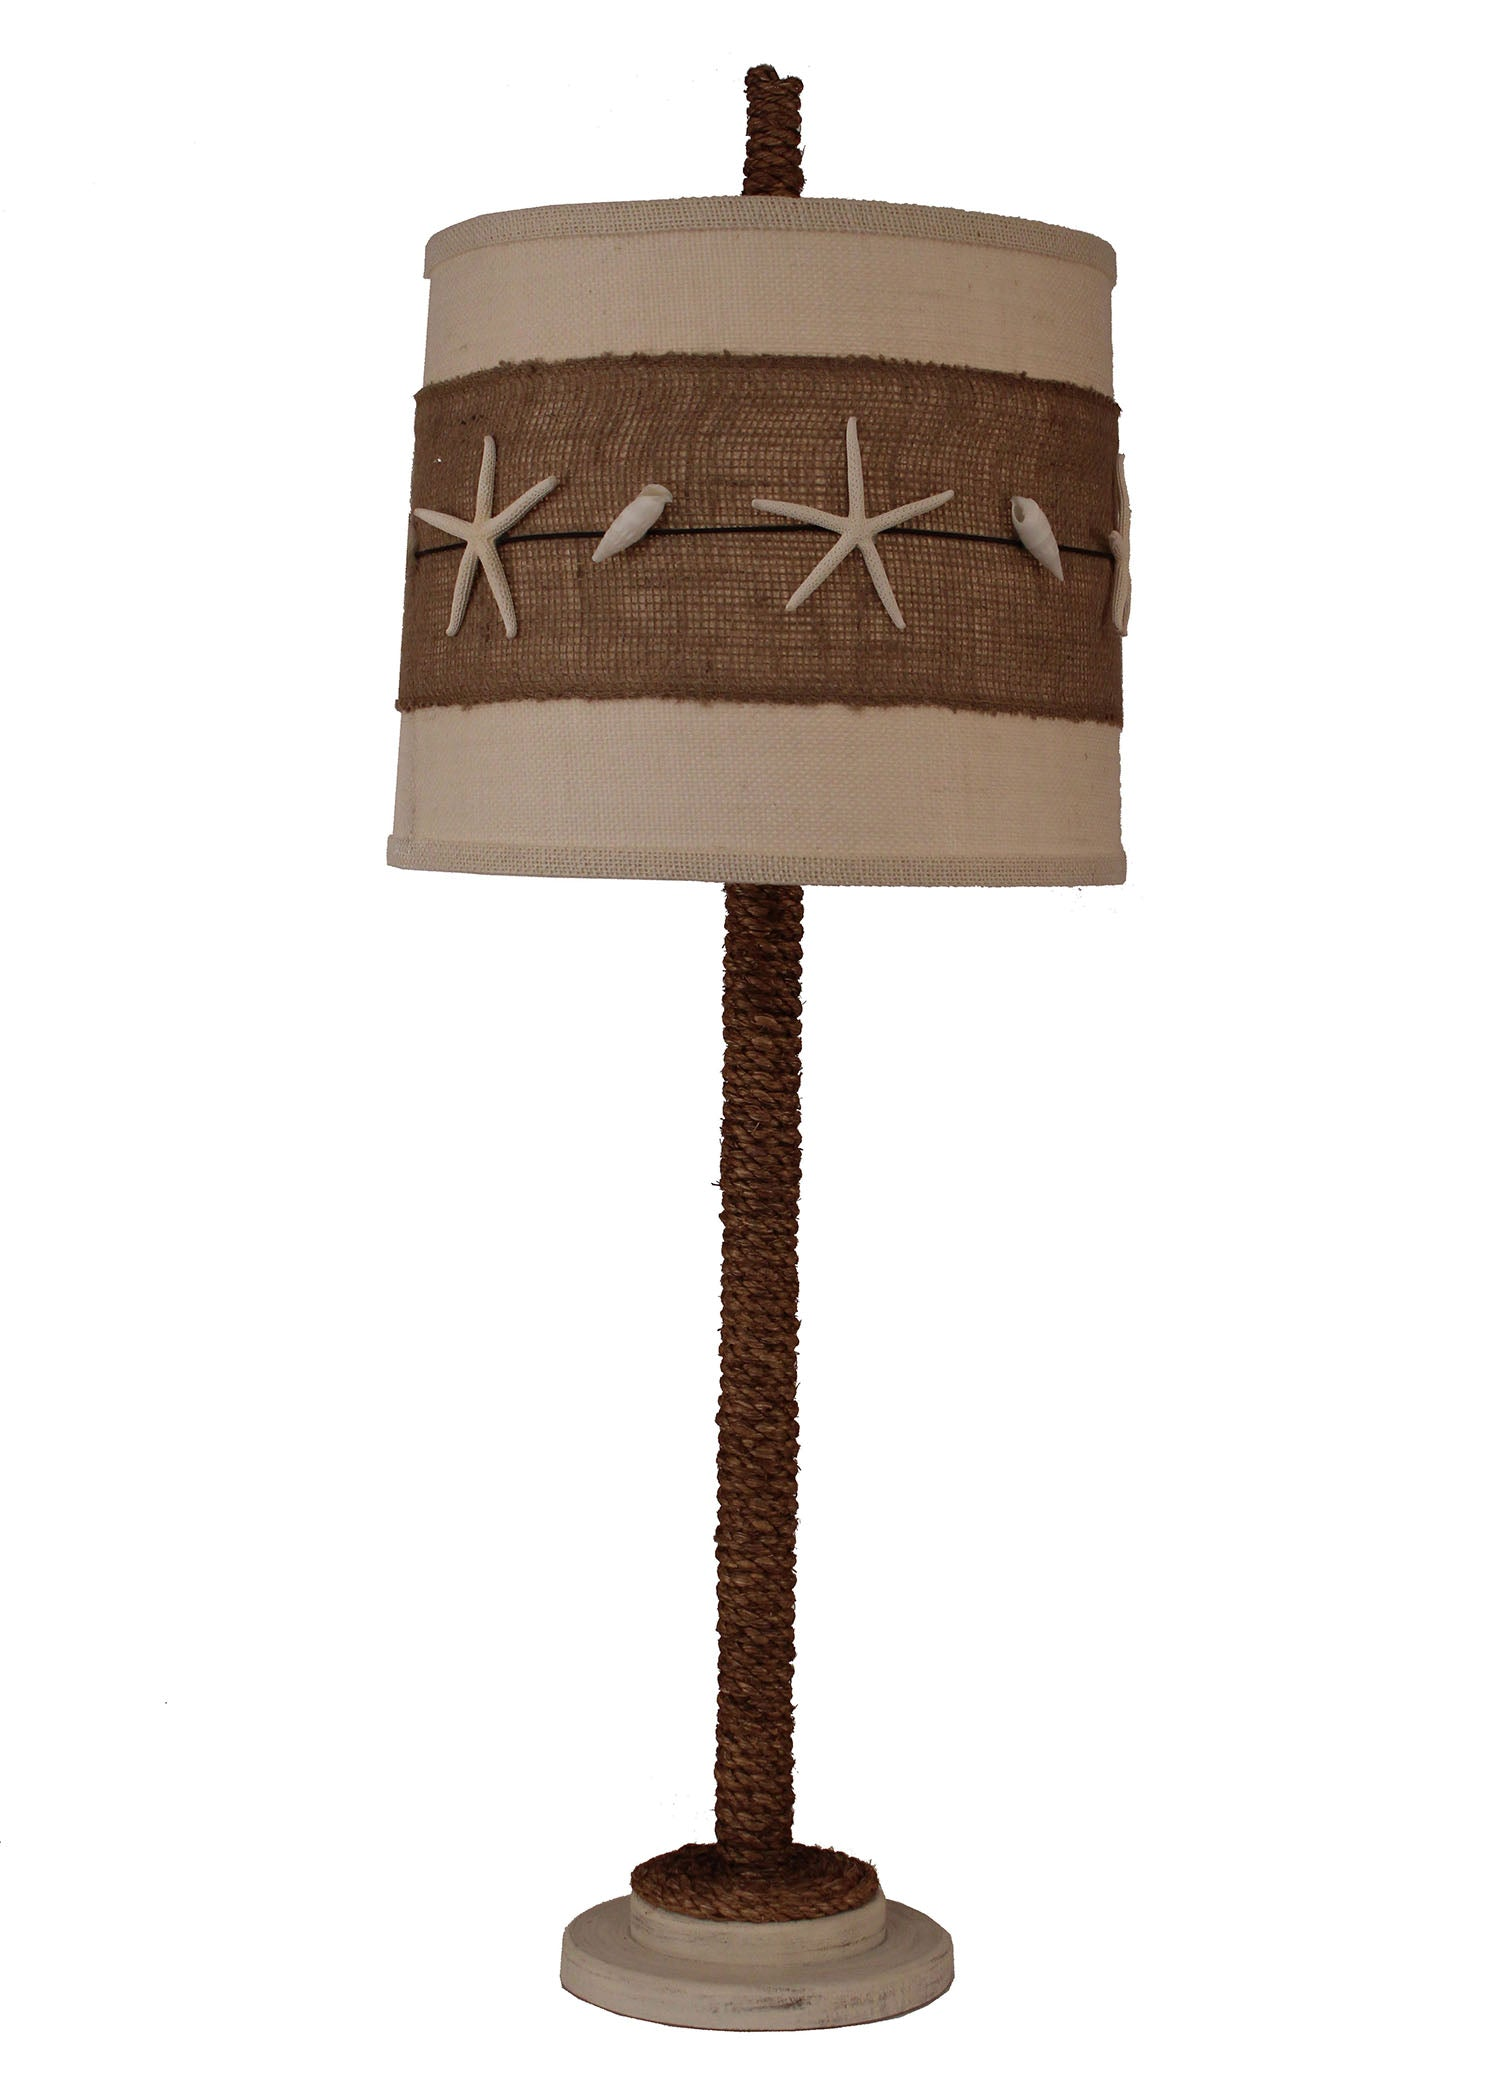 Cottage Manila Rope Table Lamp w/ Burlap and Star Fish Shade - Coast Lamp Shop